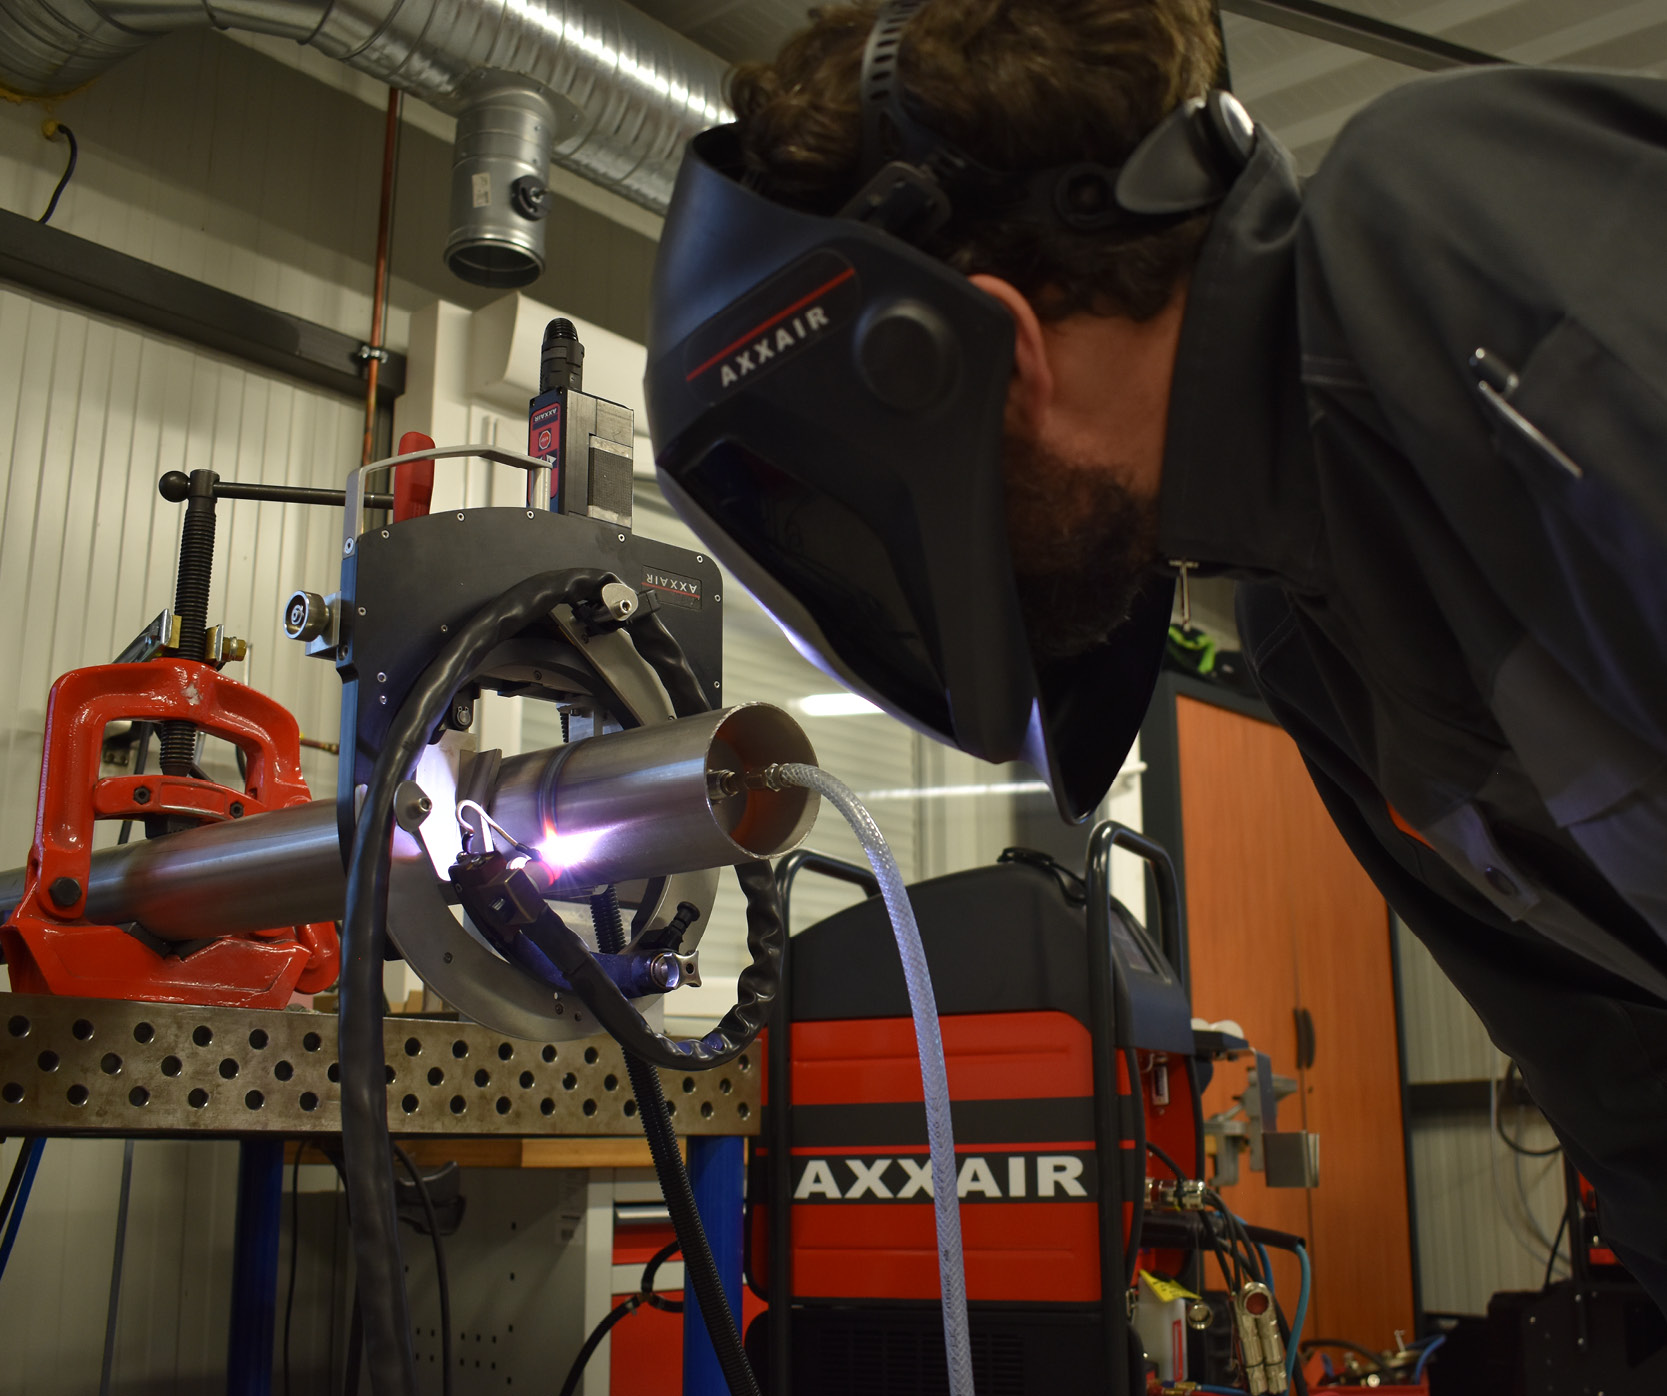 Shielding welds: What tools do welders have?